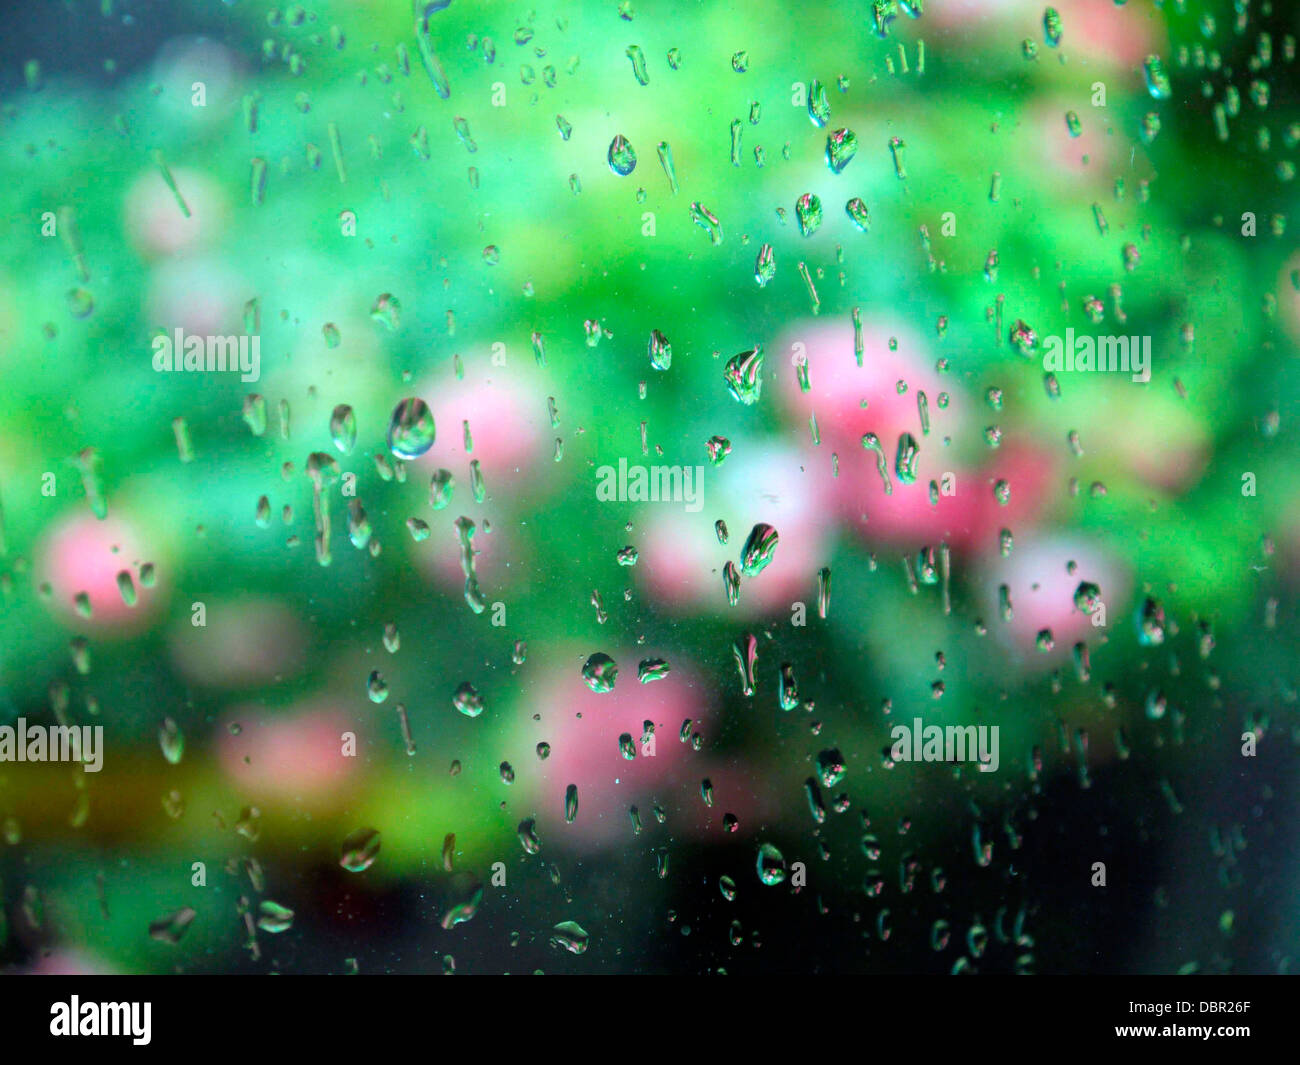 Rain drops on a window pane with blurred pink roses in the background. - Stock Image